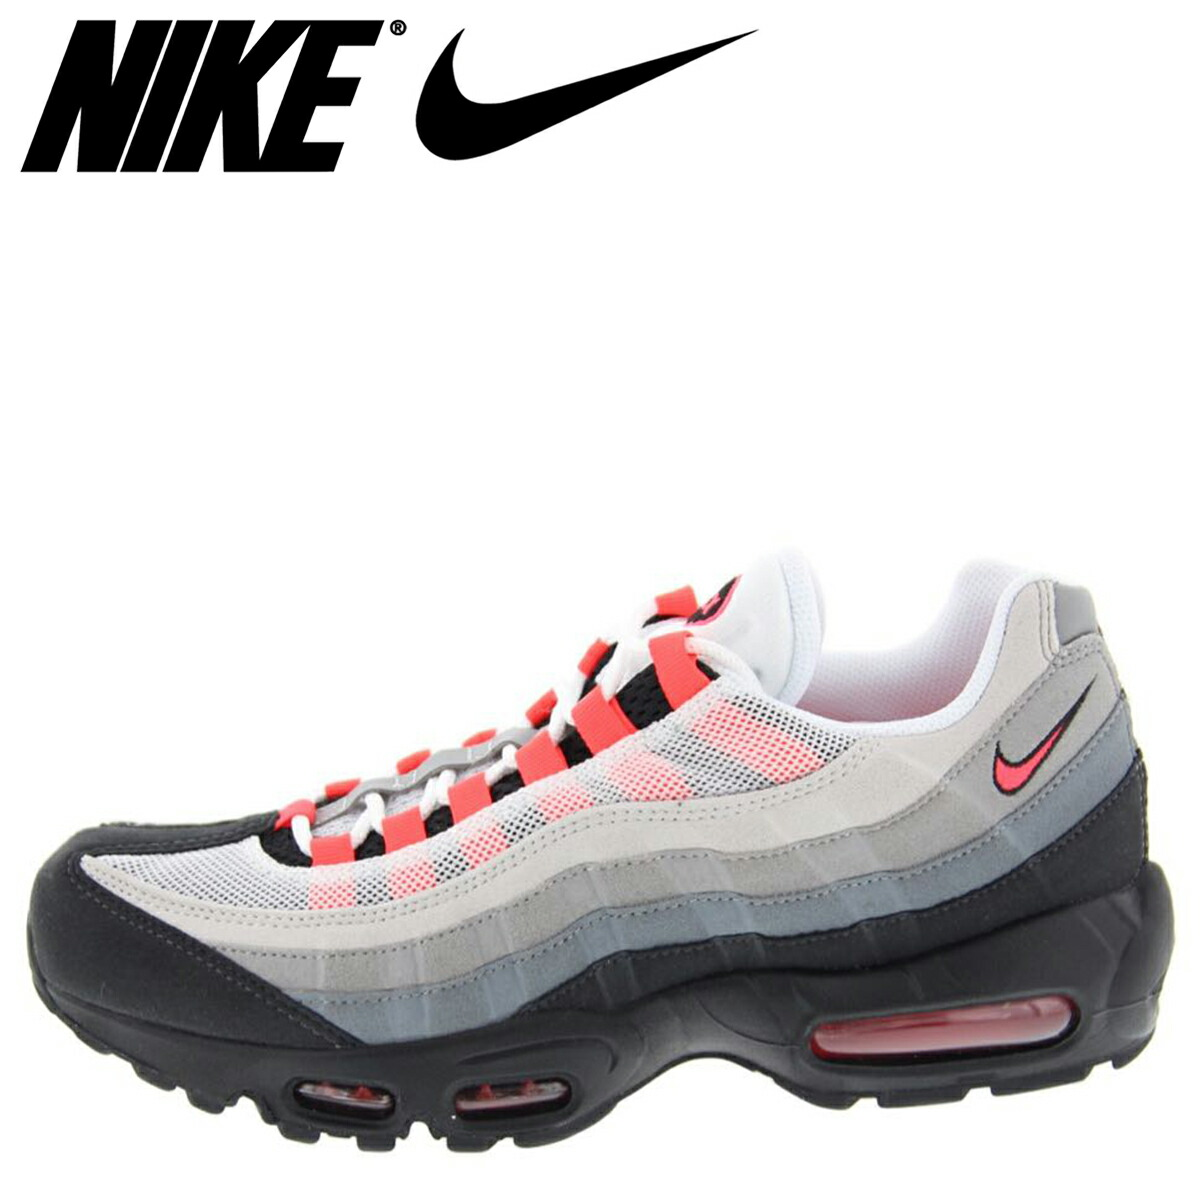 068f95e357 SneaK Online Shop: Nike NIKE Air Max 95 sneakers men AIR MAX 95 OG ...